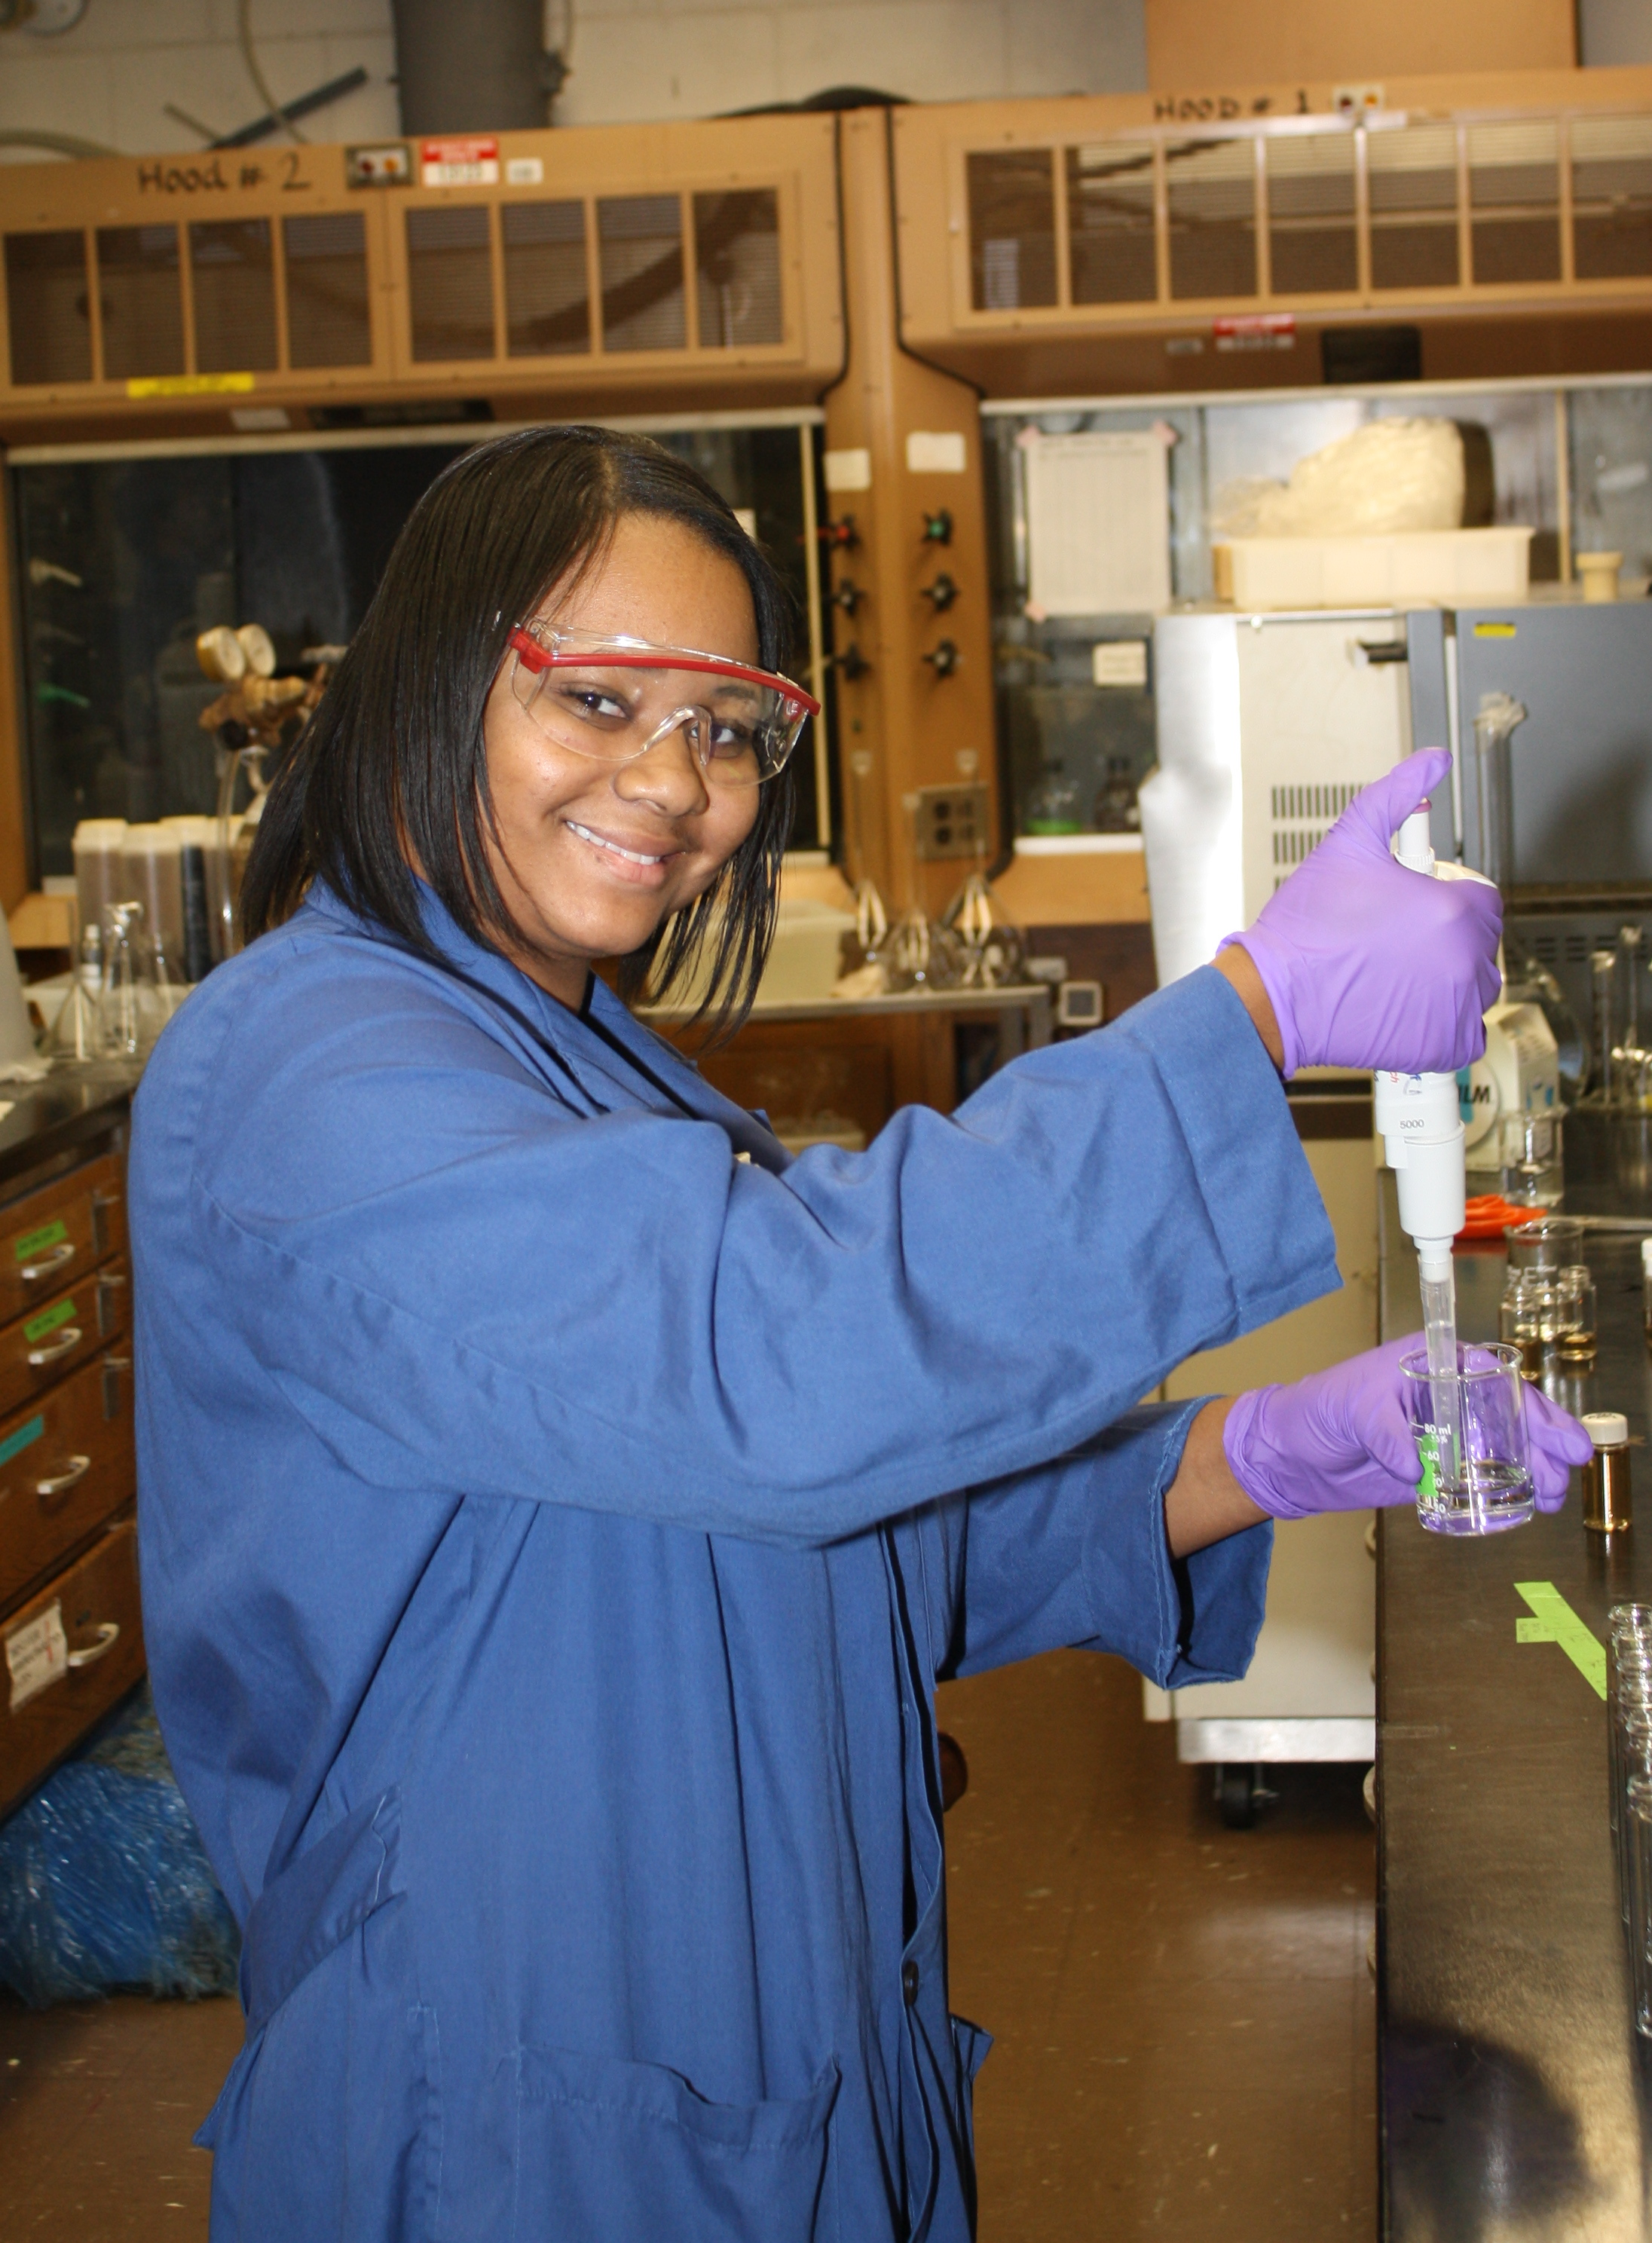 Image of IMSD Scholar conducting research in a lab